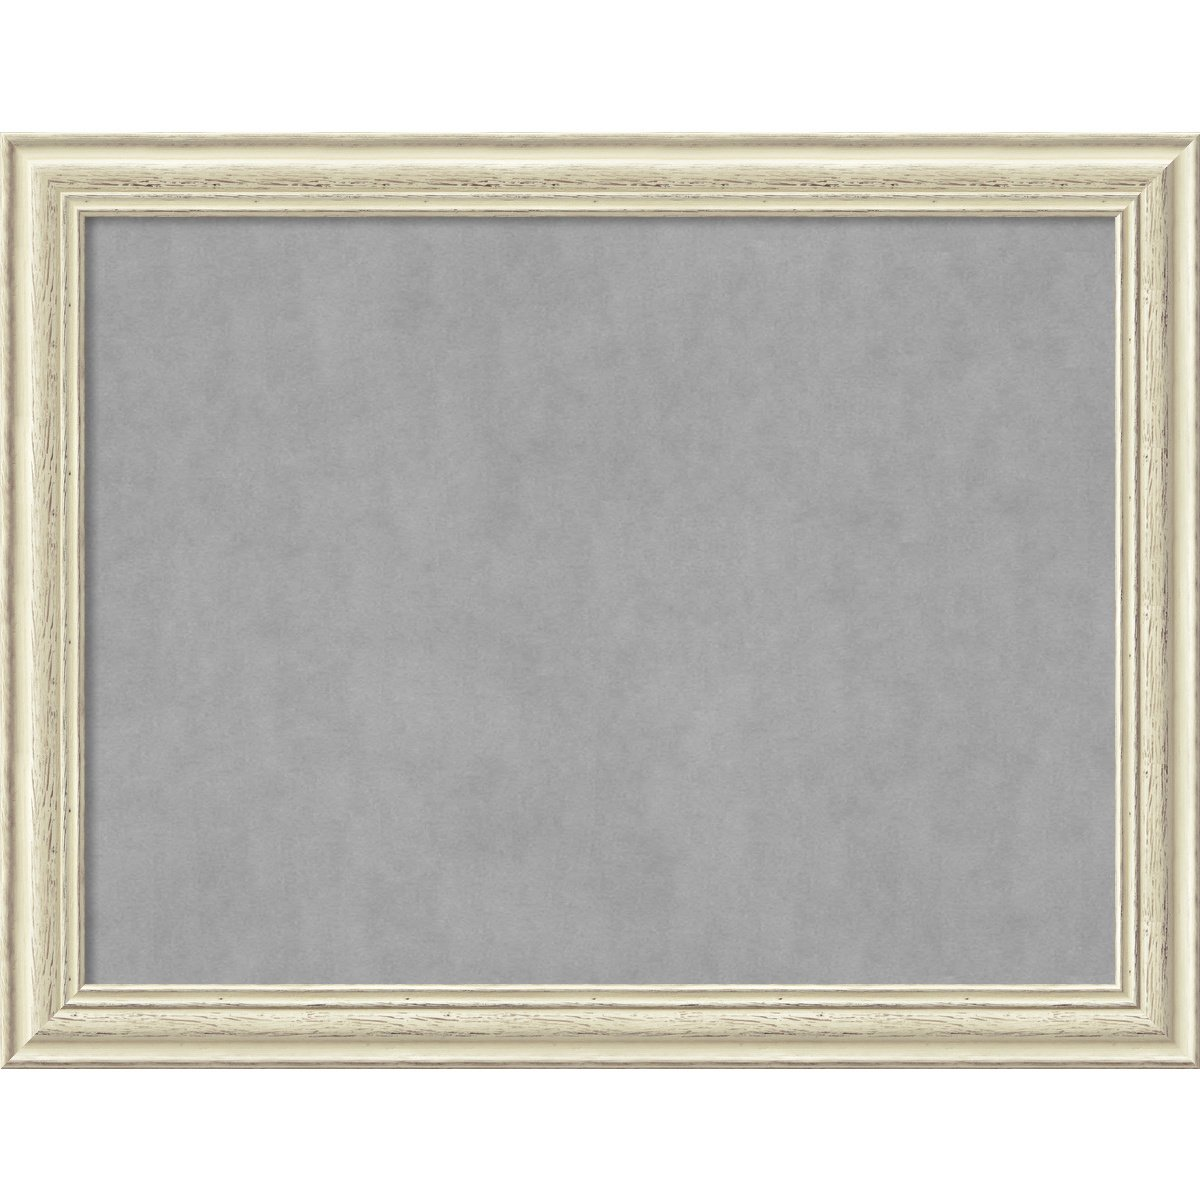 Framed Magnetic Board, Choose Your Custom Size, Country White Wash Wood by Amanti Art